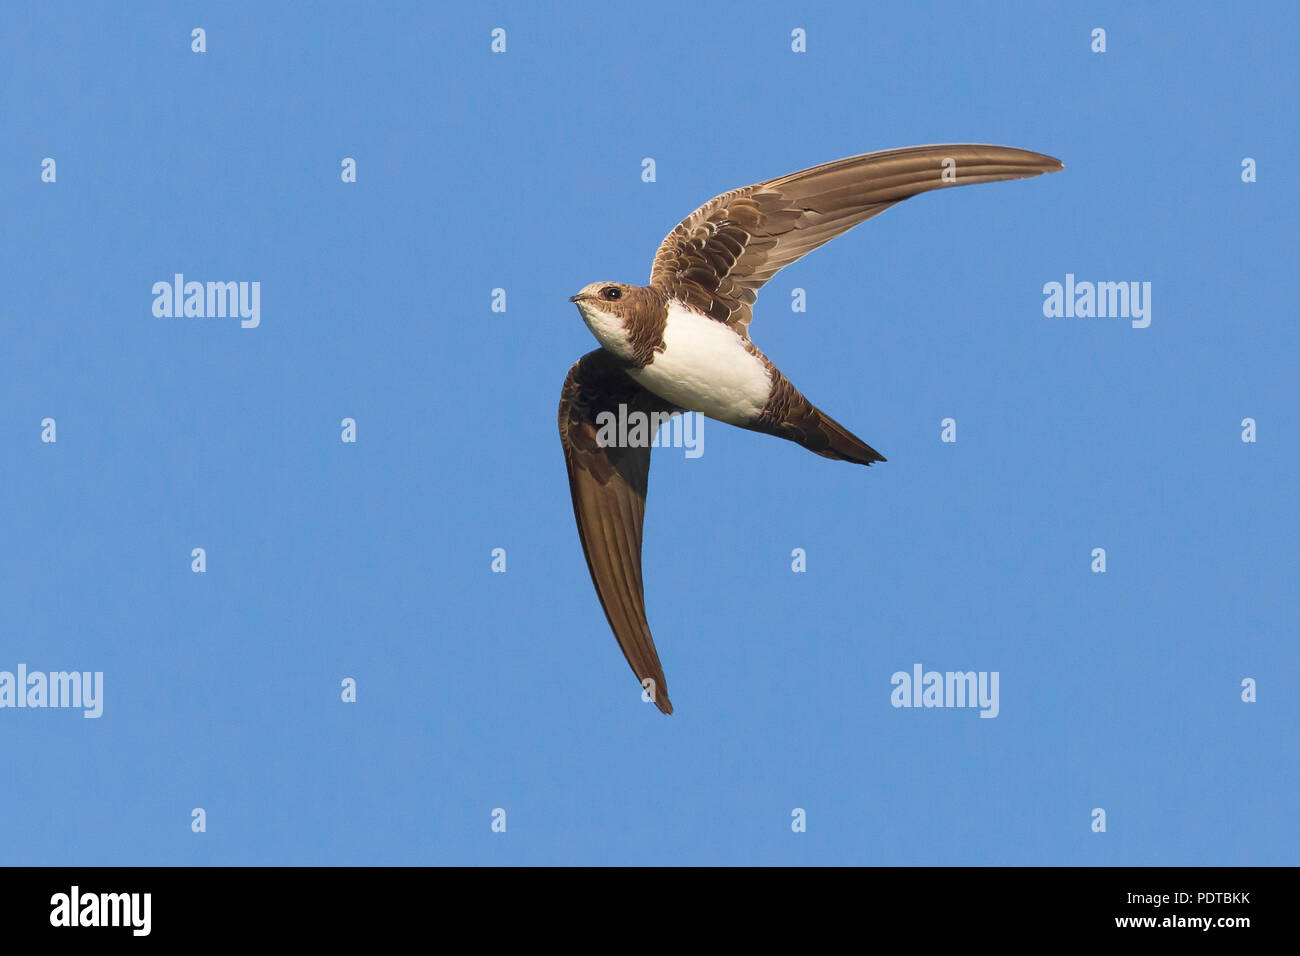 Alpine Swift flying across a blue sky. Stock Photo